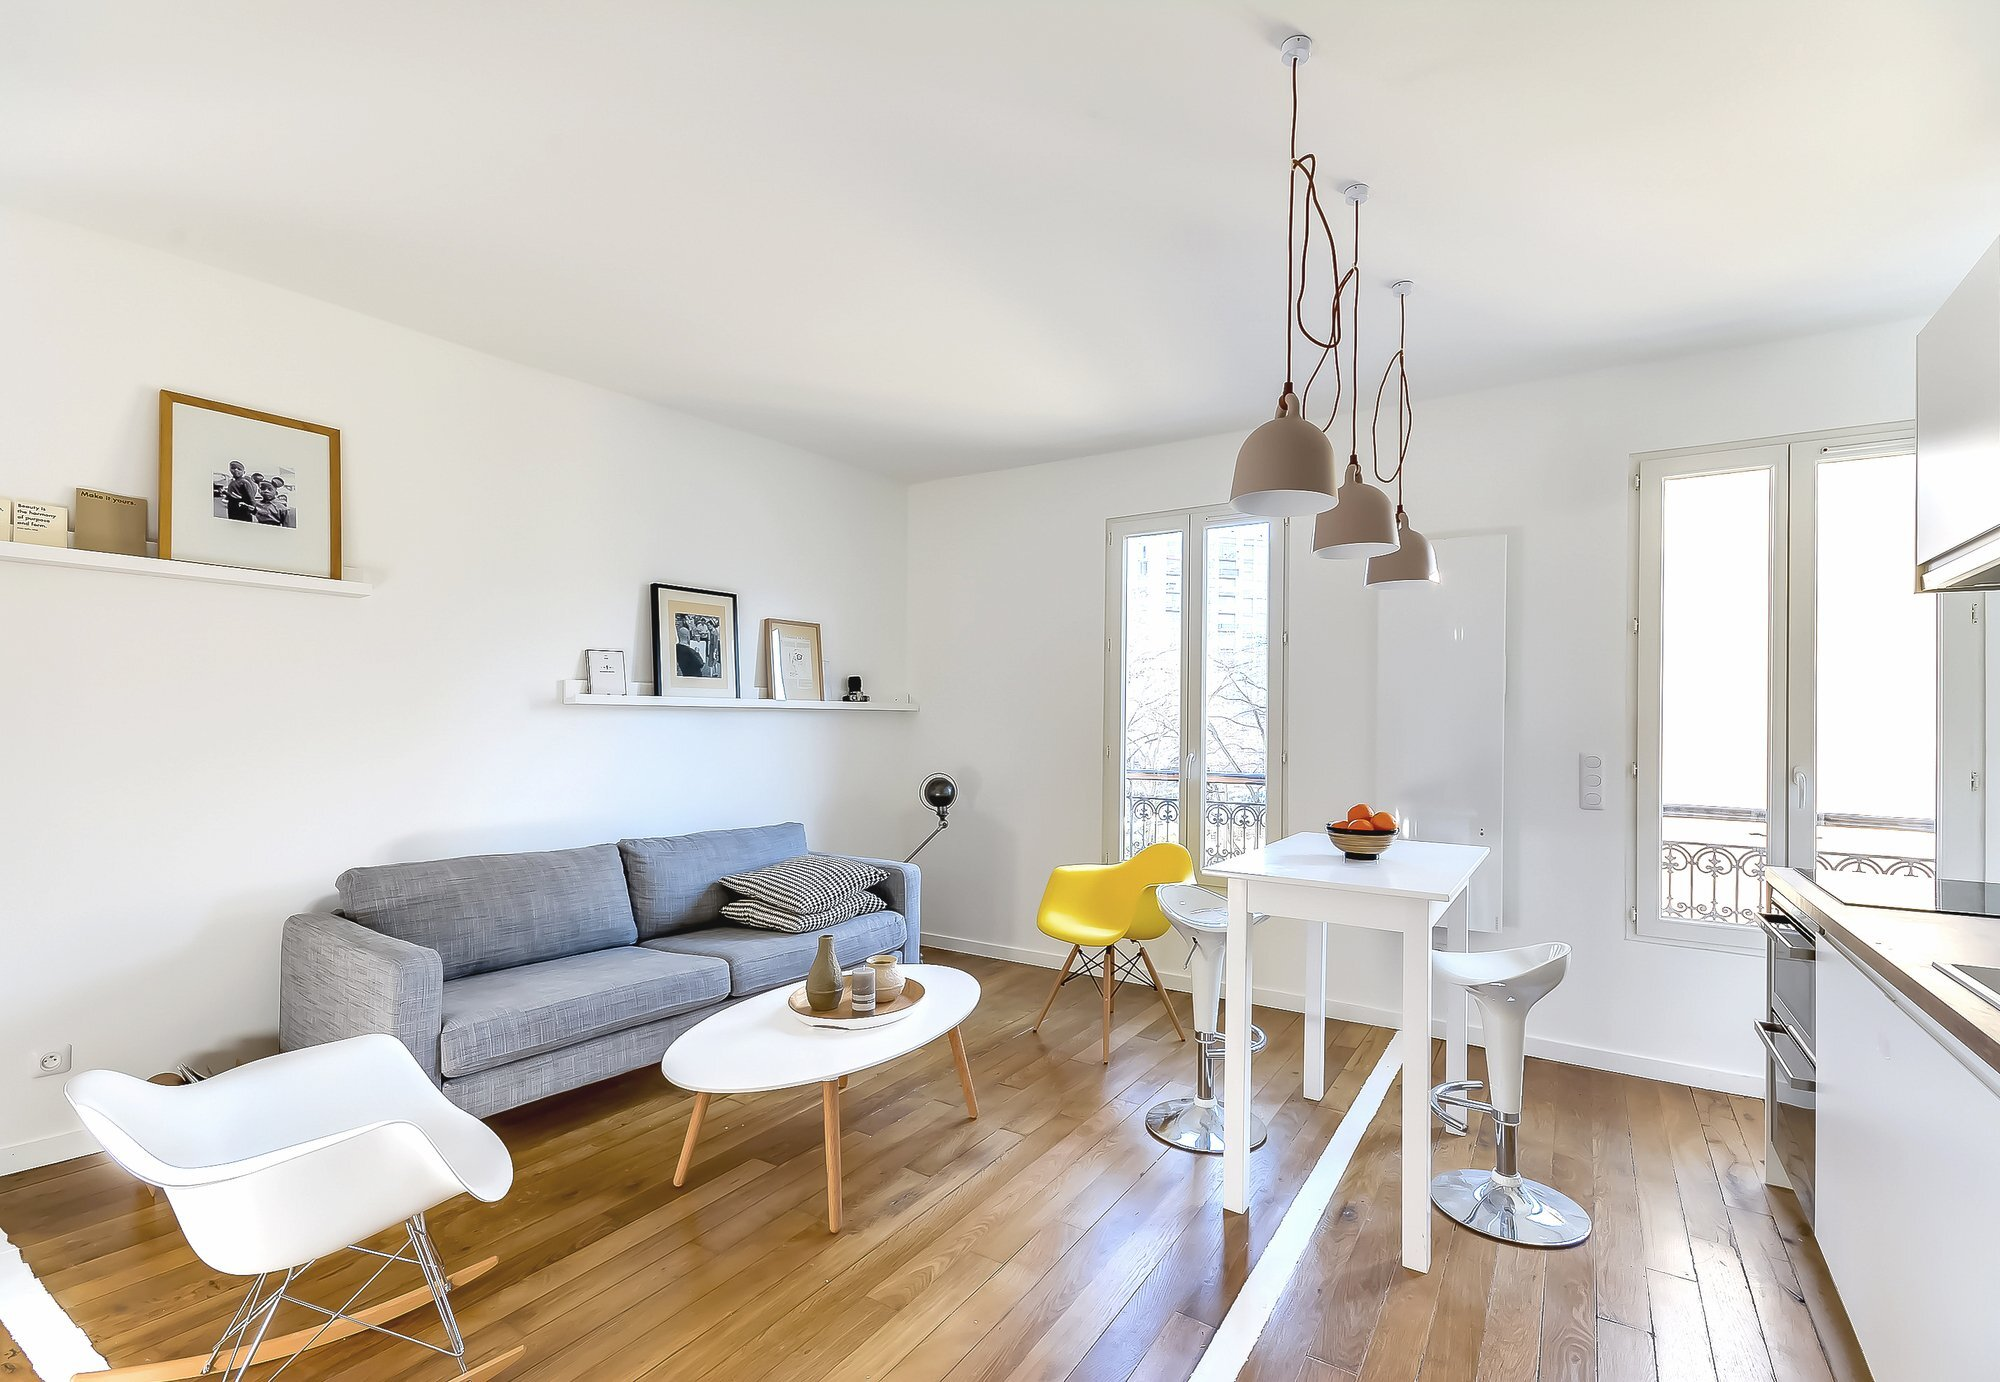 Flat in Paris - Small Apartment - Richard Guilbault - France - Living Area - Humble Homes